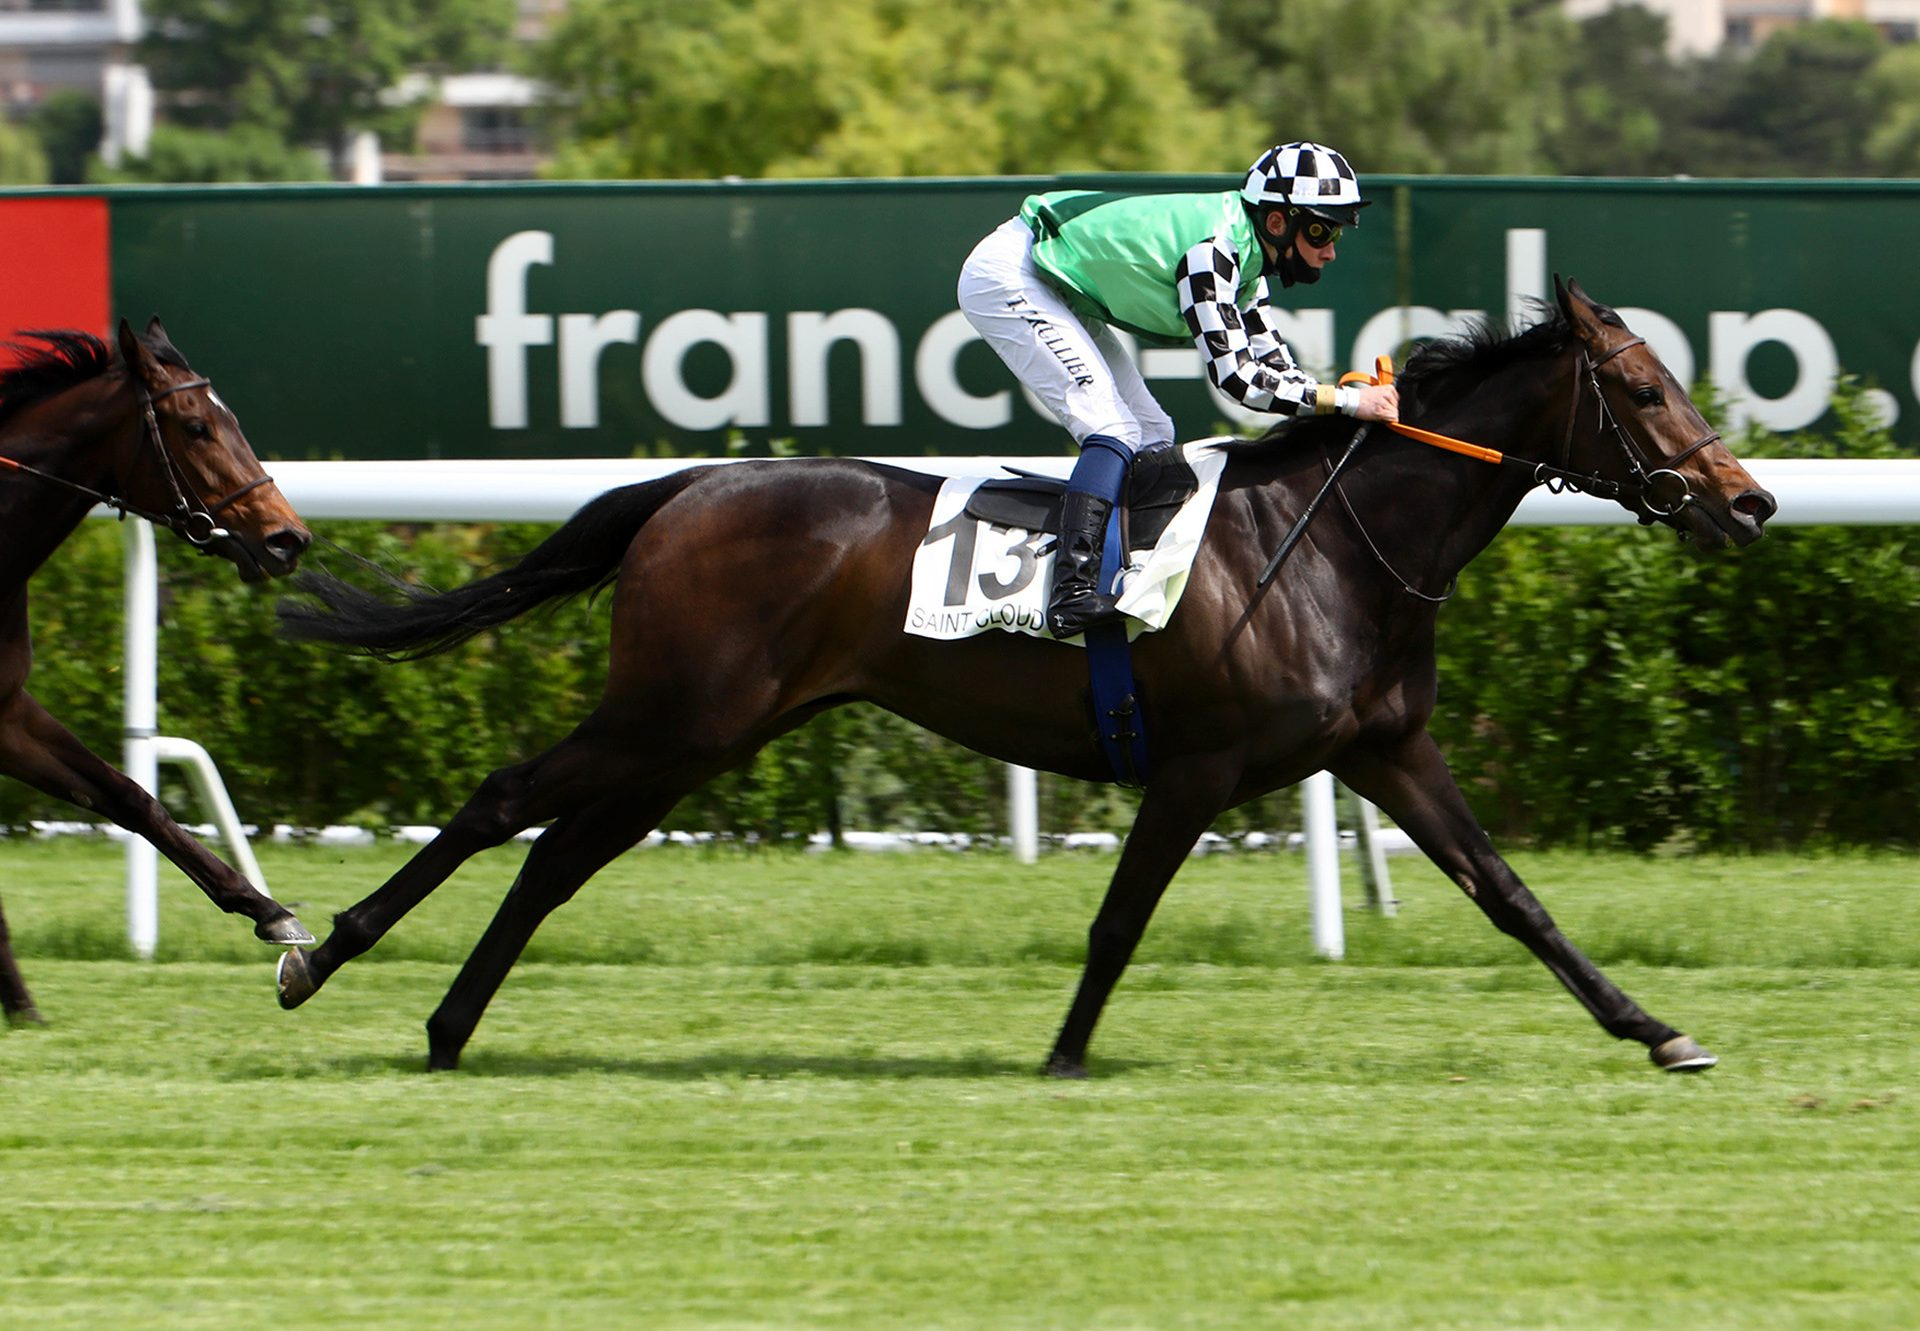 Beaute Pour Toi (Camelot) winning on debut at Saint Cloud